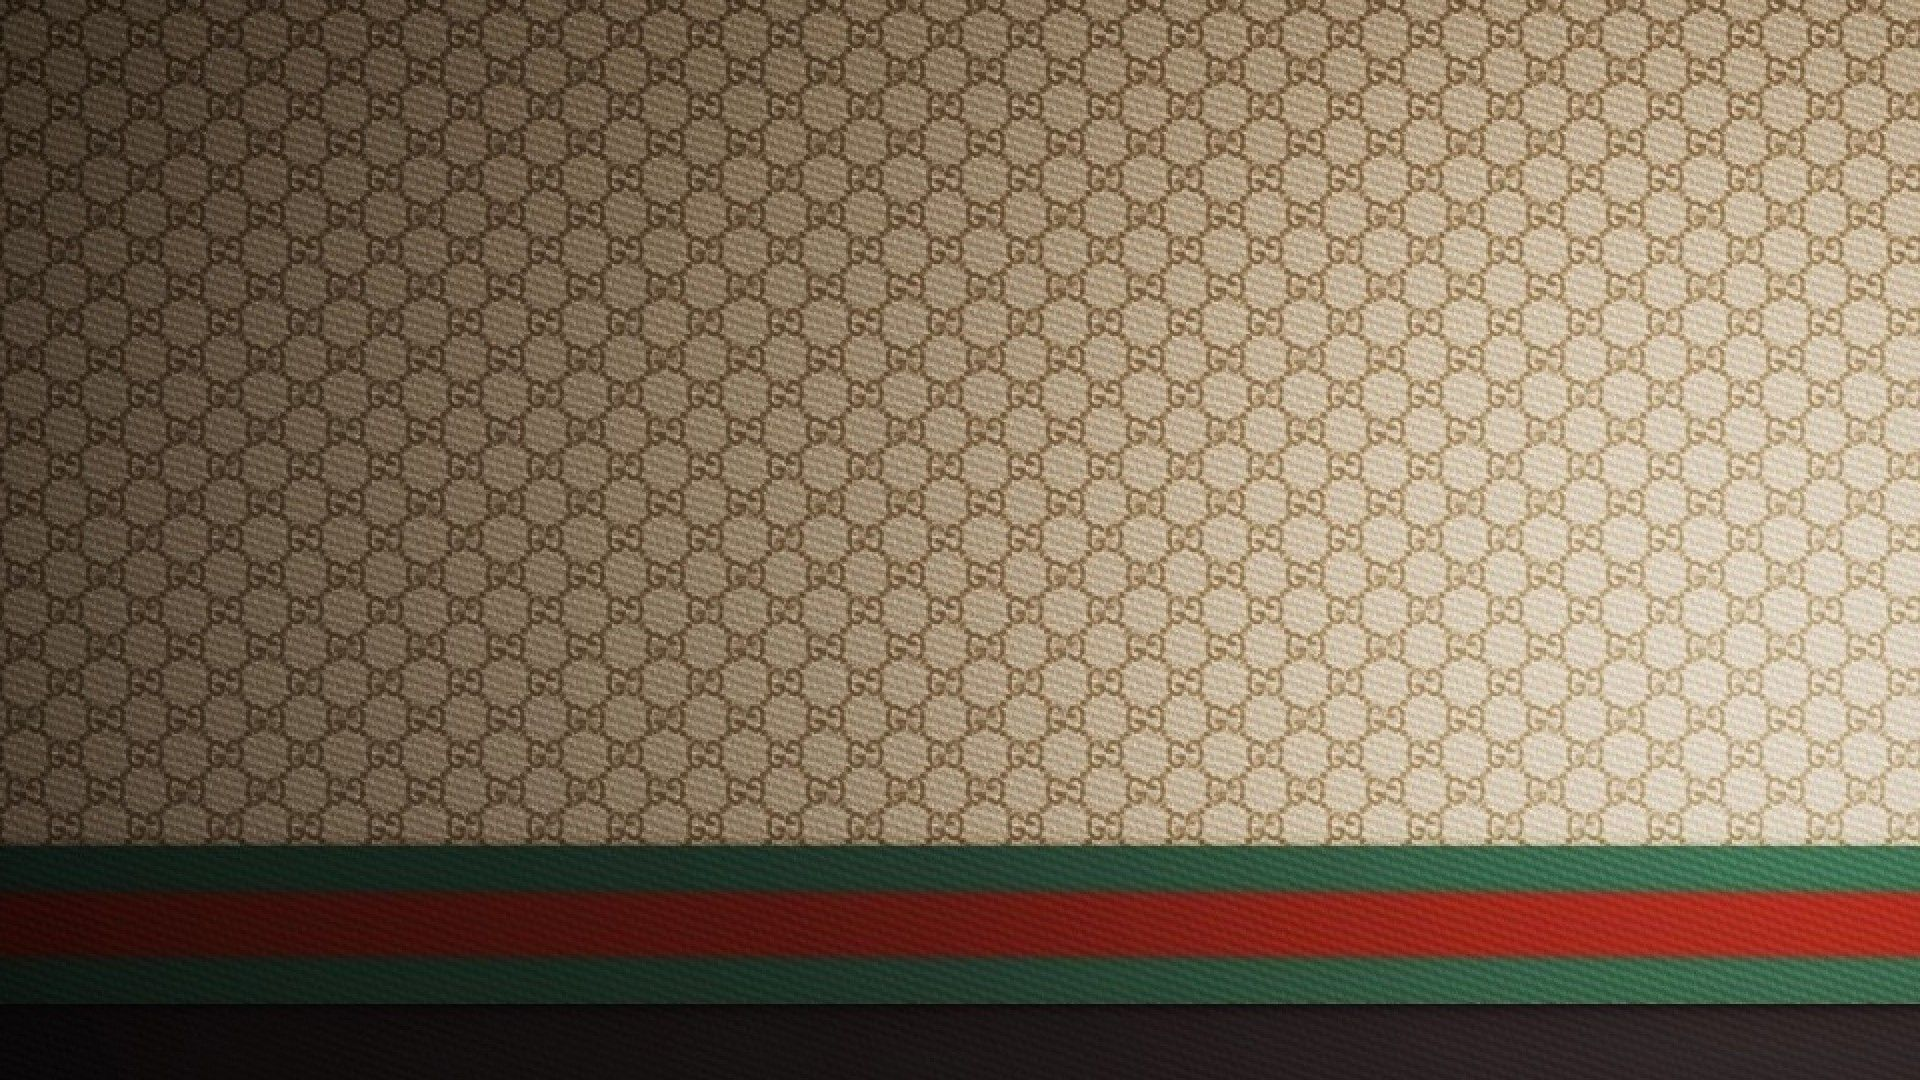 Gucci wallpapers HD free download. Design Pinterest